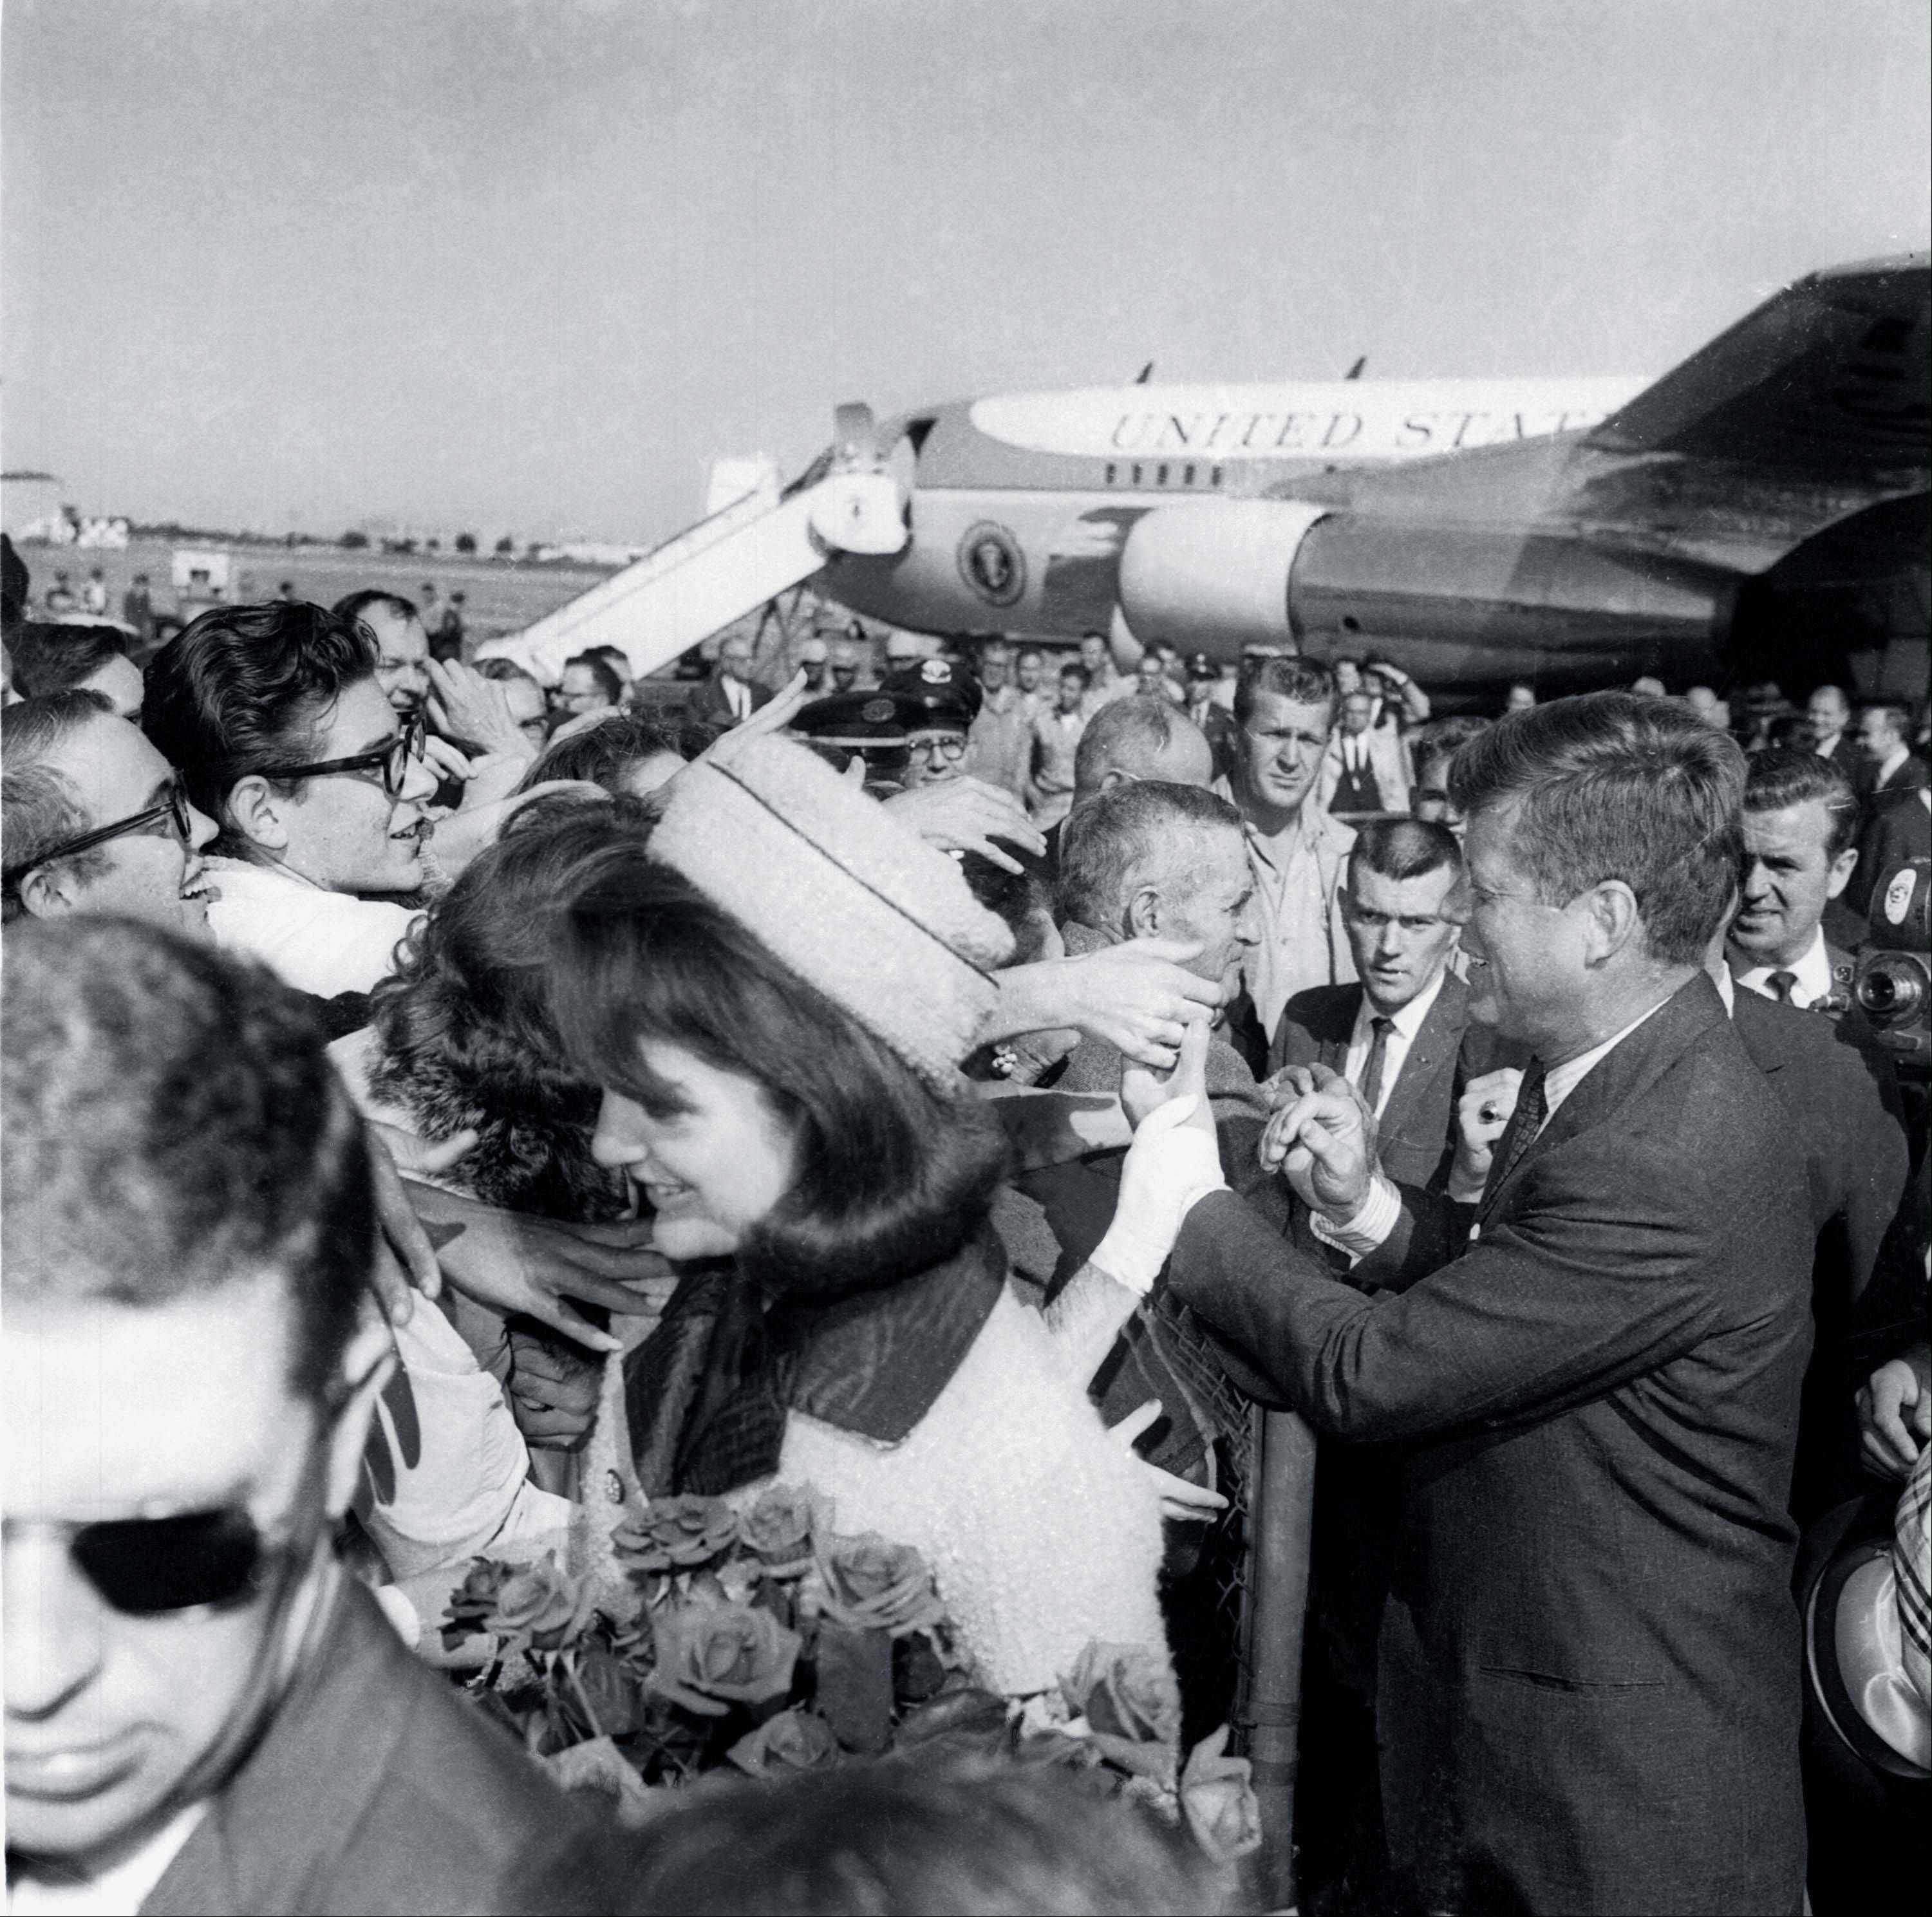 President Kennedy and the first lady Jacqueline Kennedy receive an enthusiastic welcome as they arrive in Dallas Love Field, Nov. 22, 1963. Later that day the president was assassinated as his motorcade moved through the city.